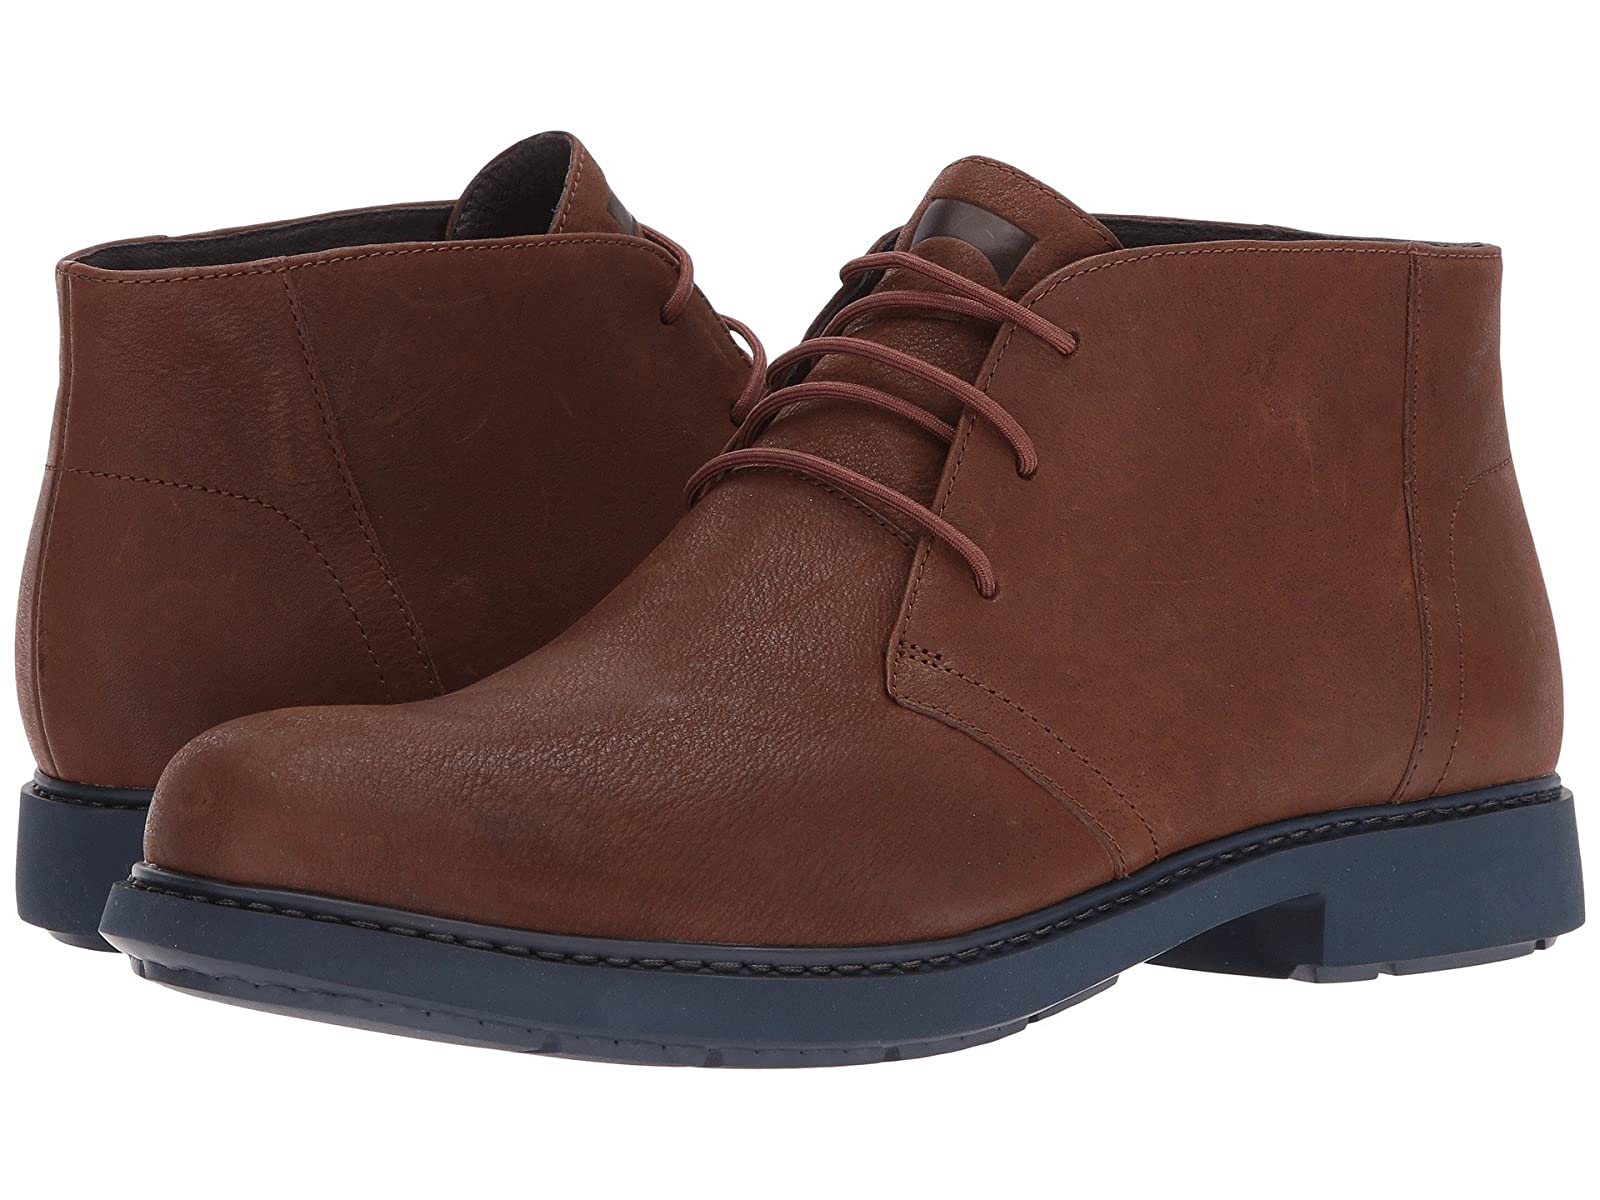 Camper Neuman - K300171Cheap and distinctive eye-catching shoes